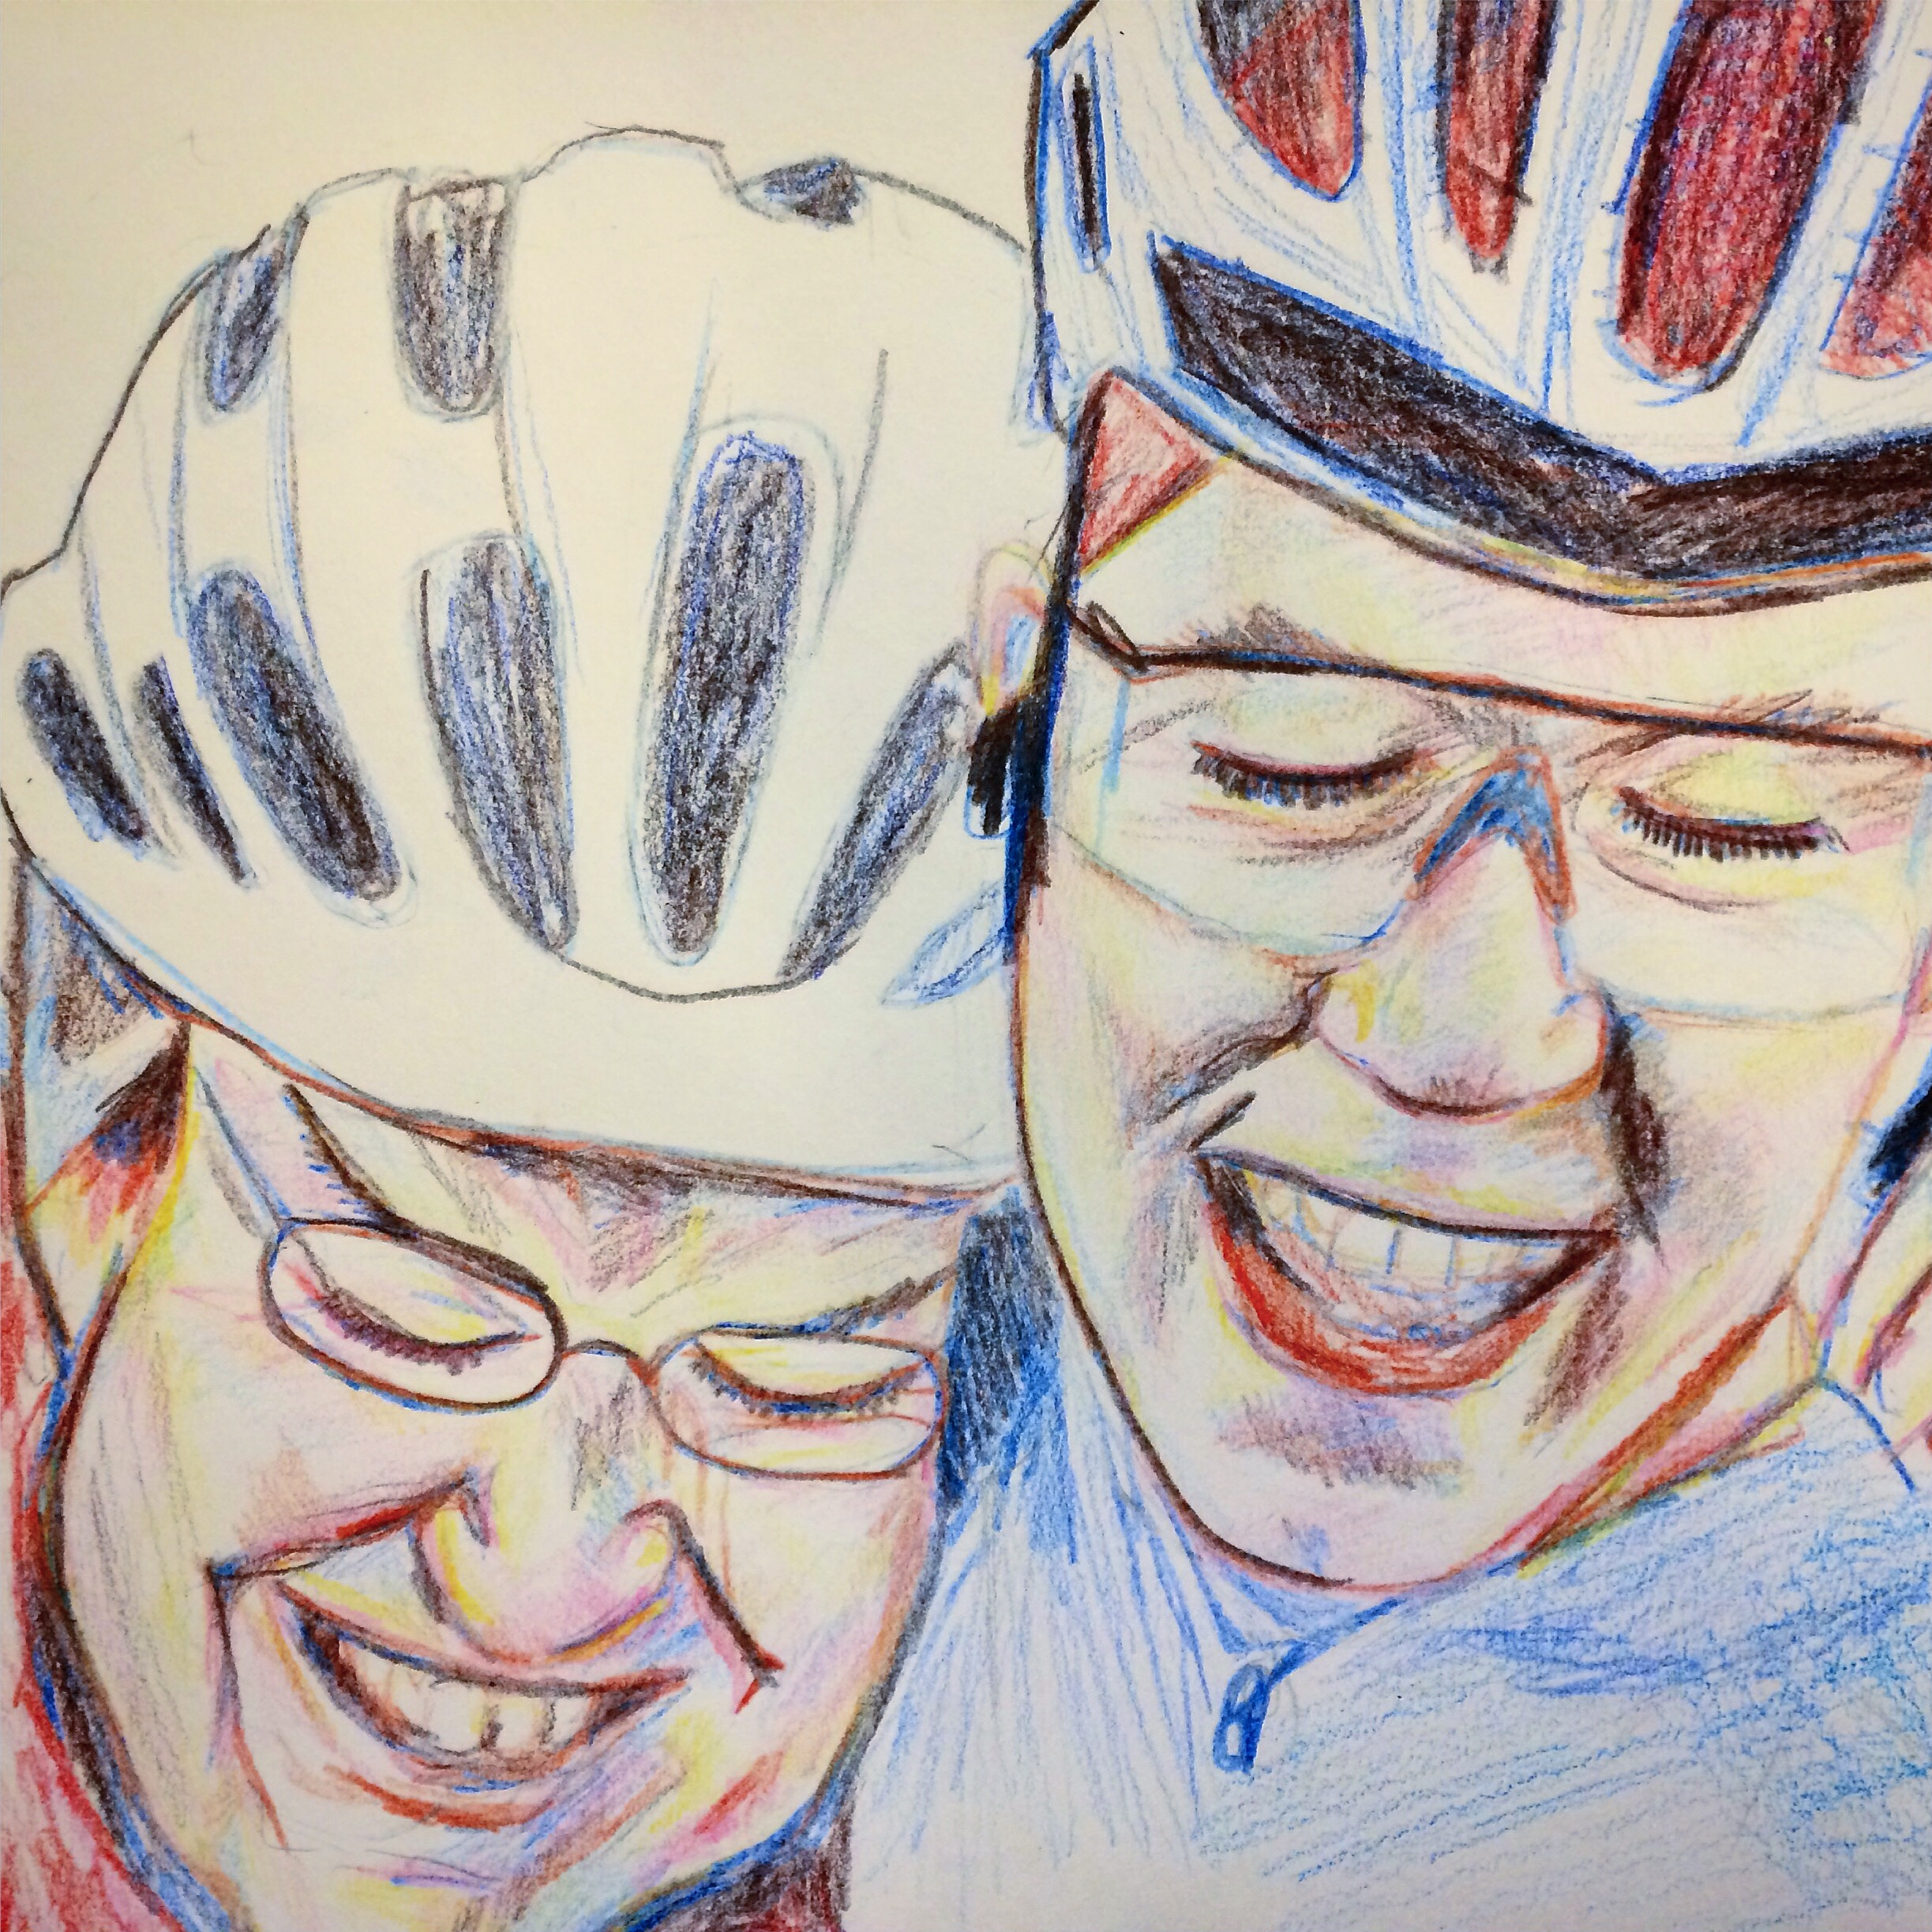 Line drawing of two smiling faces with bicycle helmets on